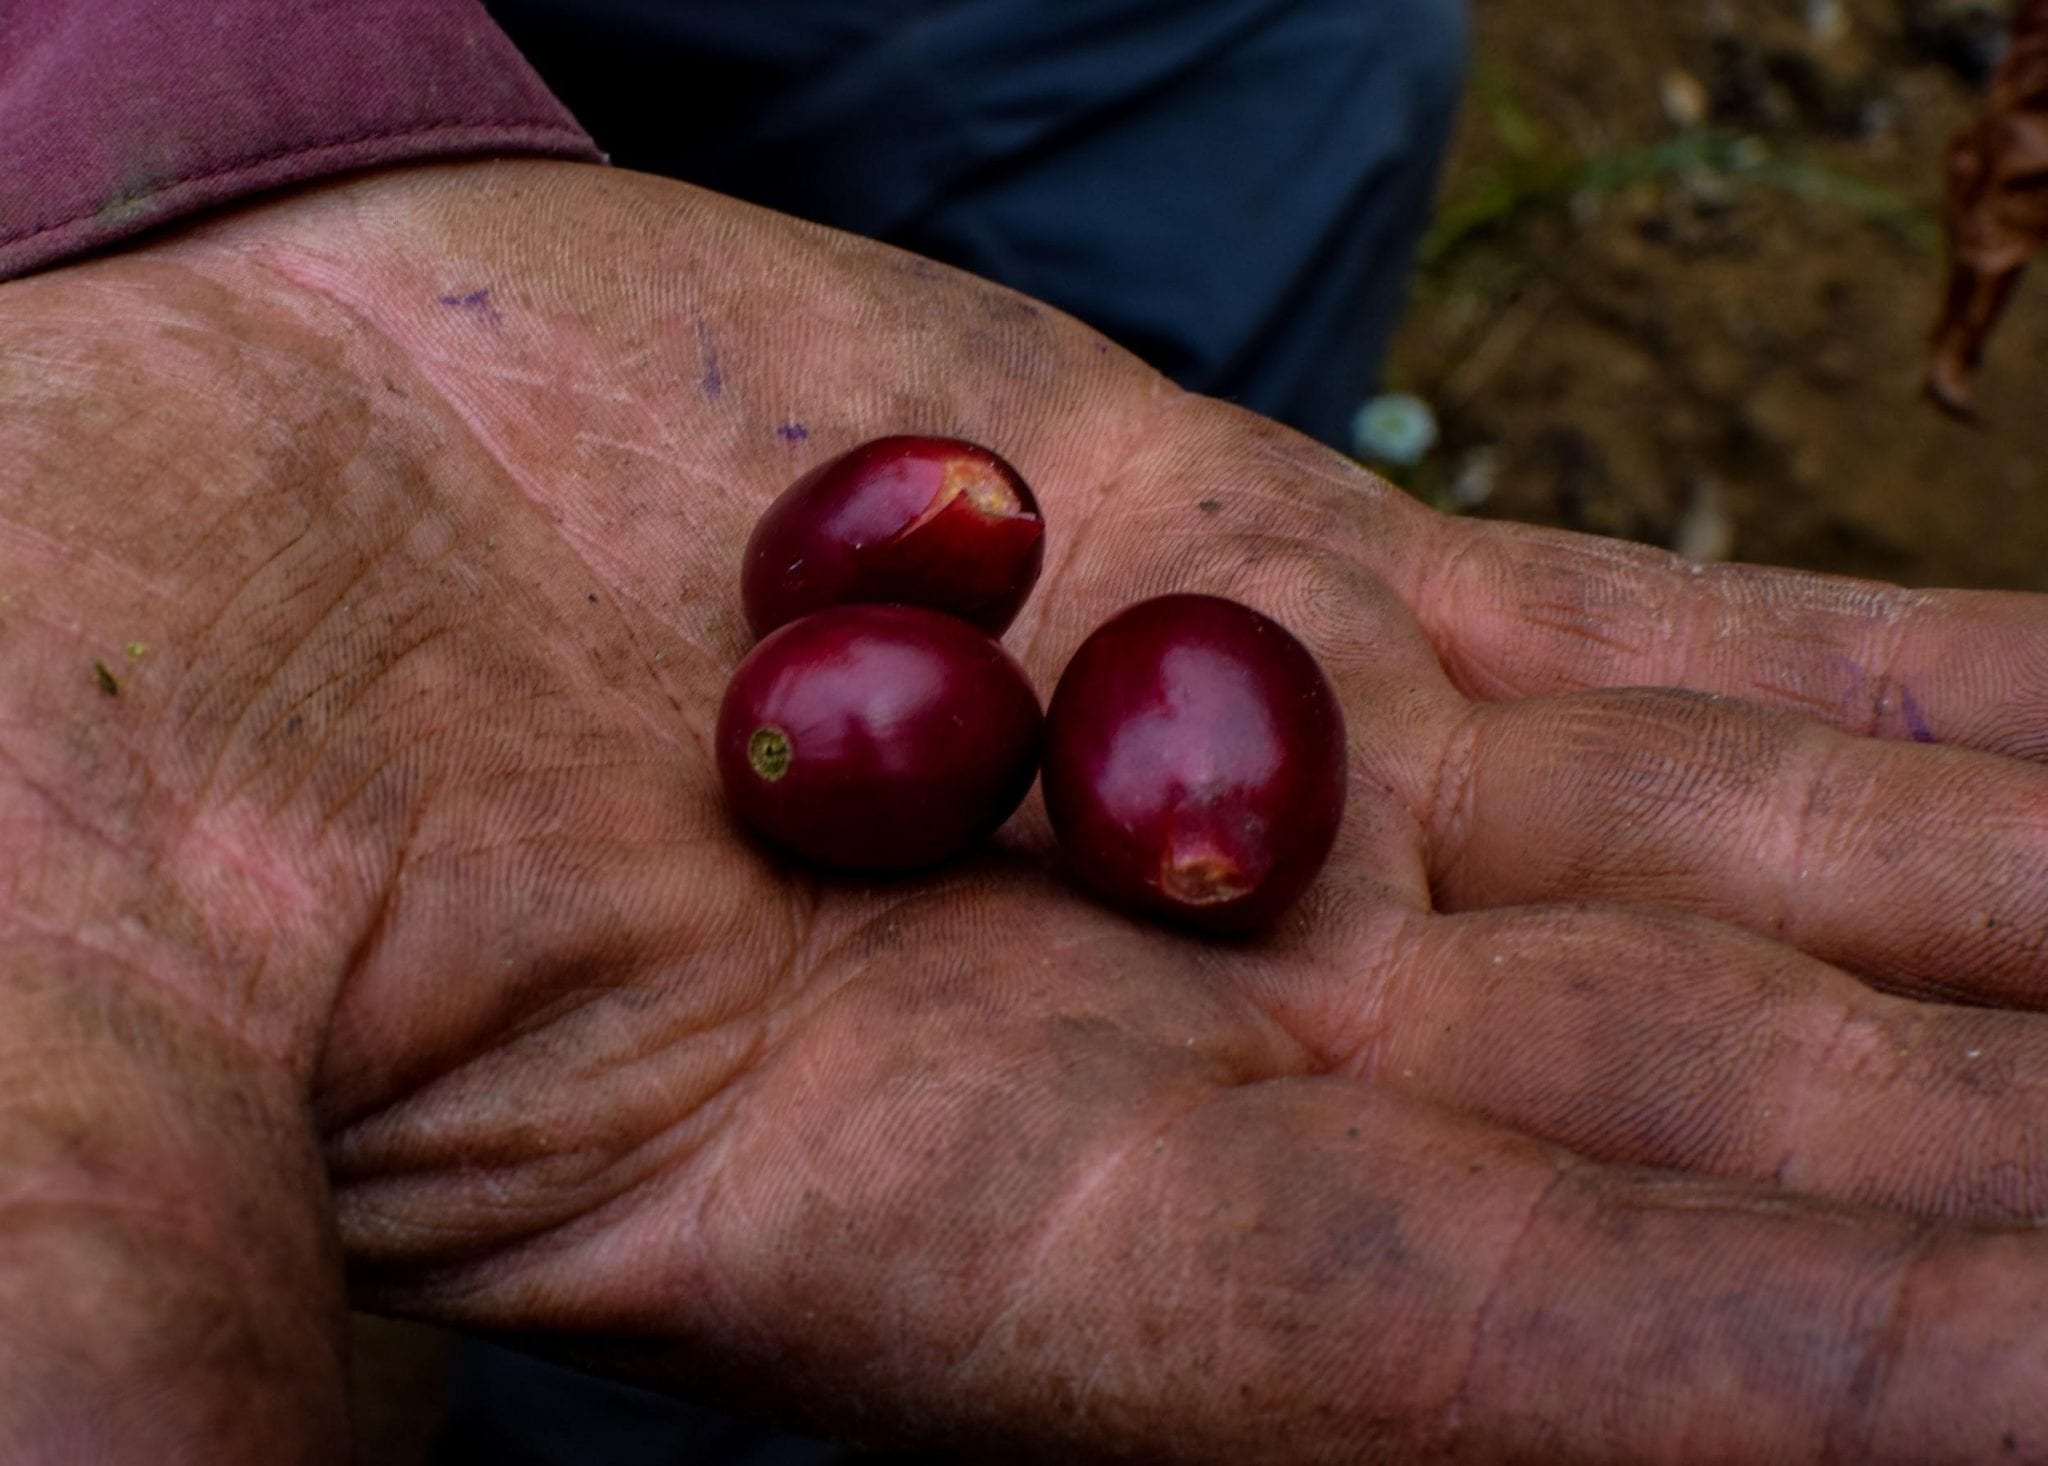 some coffee cherries on a hand of a coffee producer